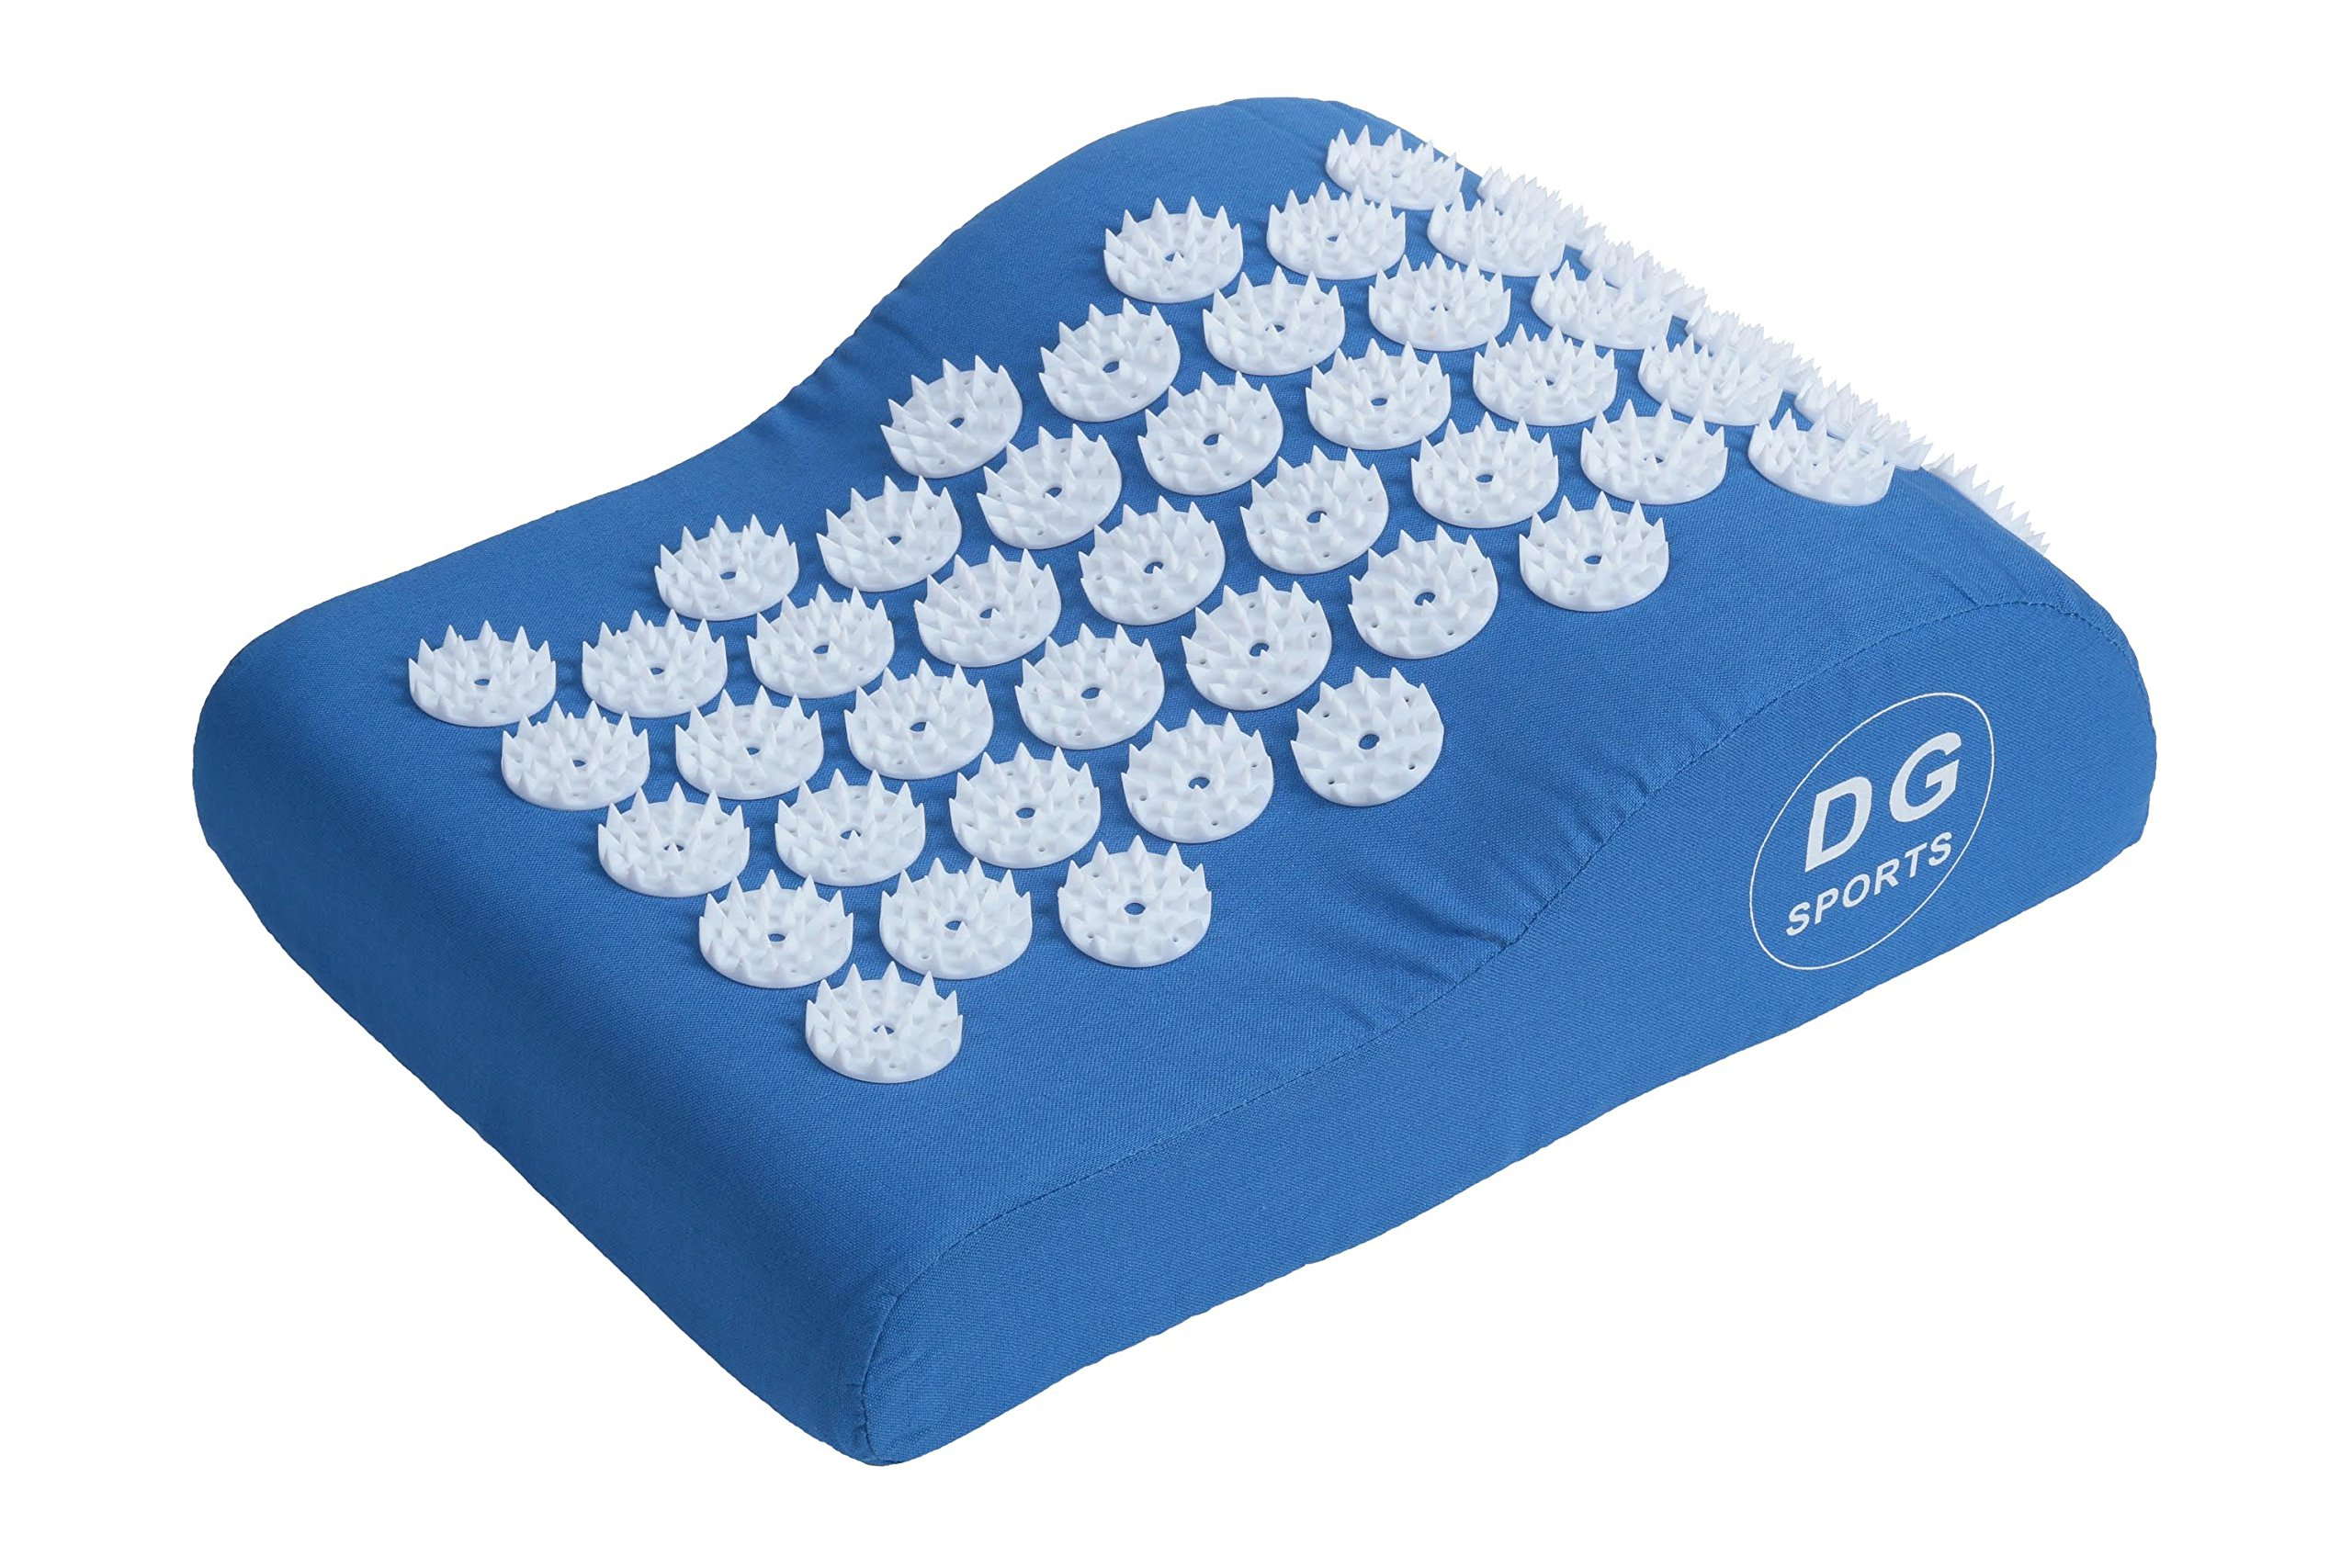 Acupressure Pillow - Blue / Acupuncture Pillow for Neck Pain Relief Treatment